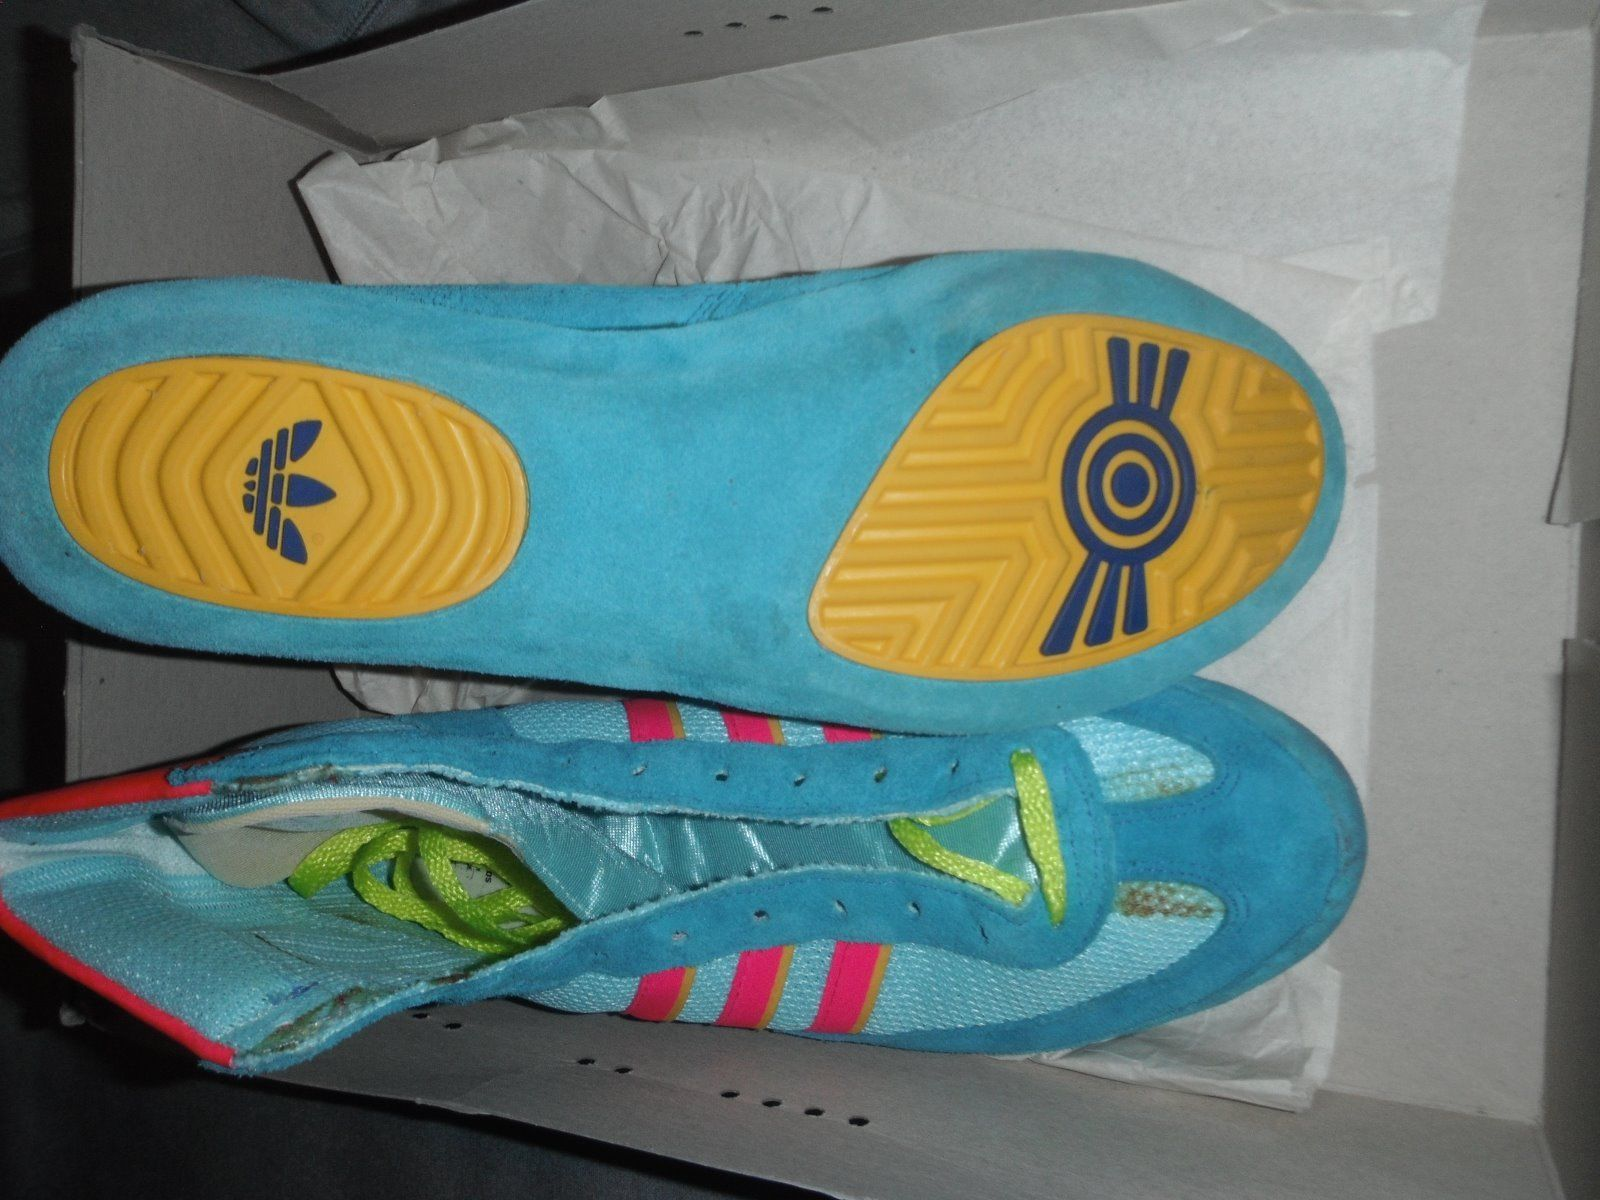 super popular 83fc6 50da2 Adidas 88 Teals Ringerstiefel (Very Rare) Wrestling Shoes Size 10.5 (10  12)  eBay